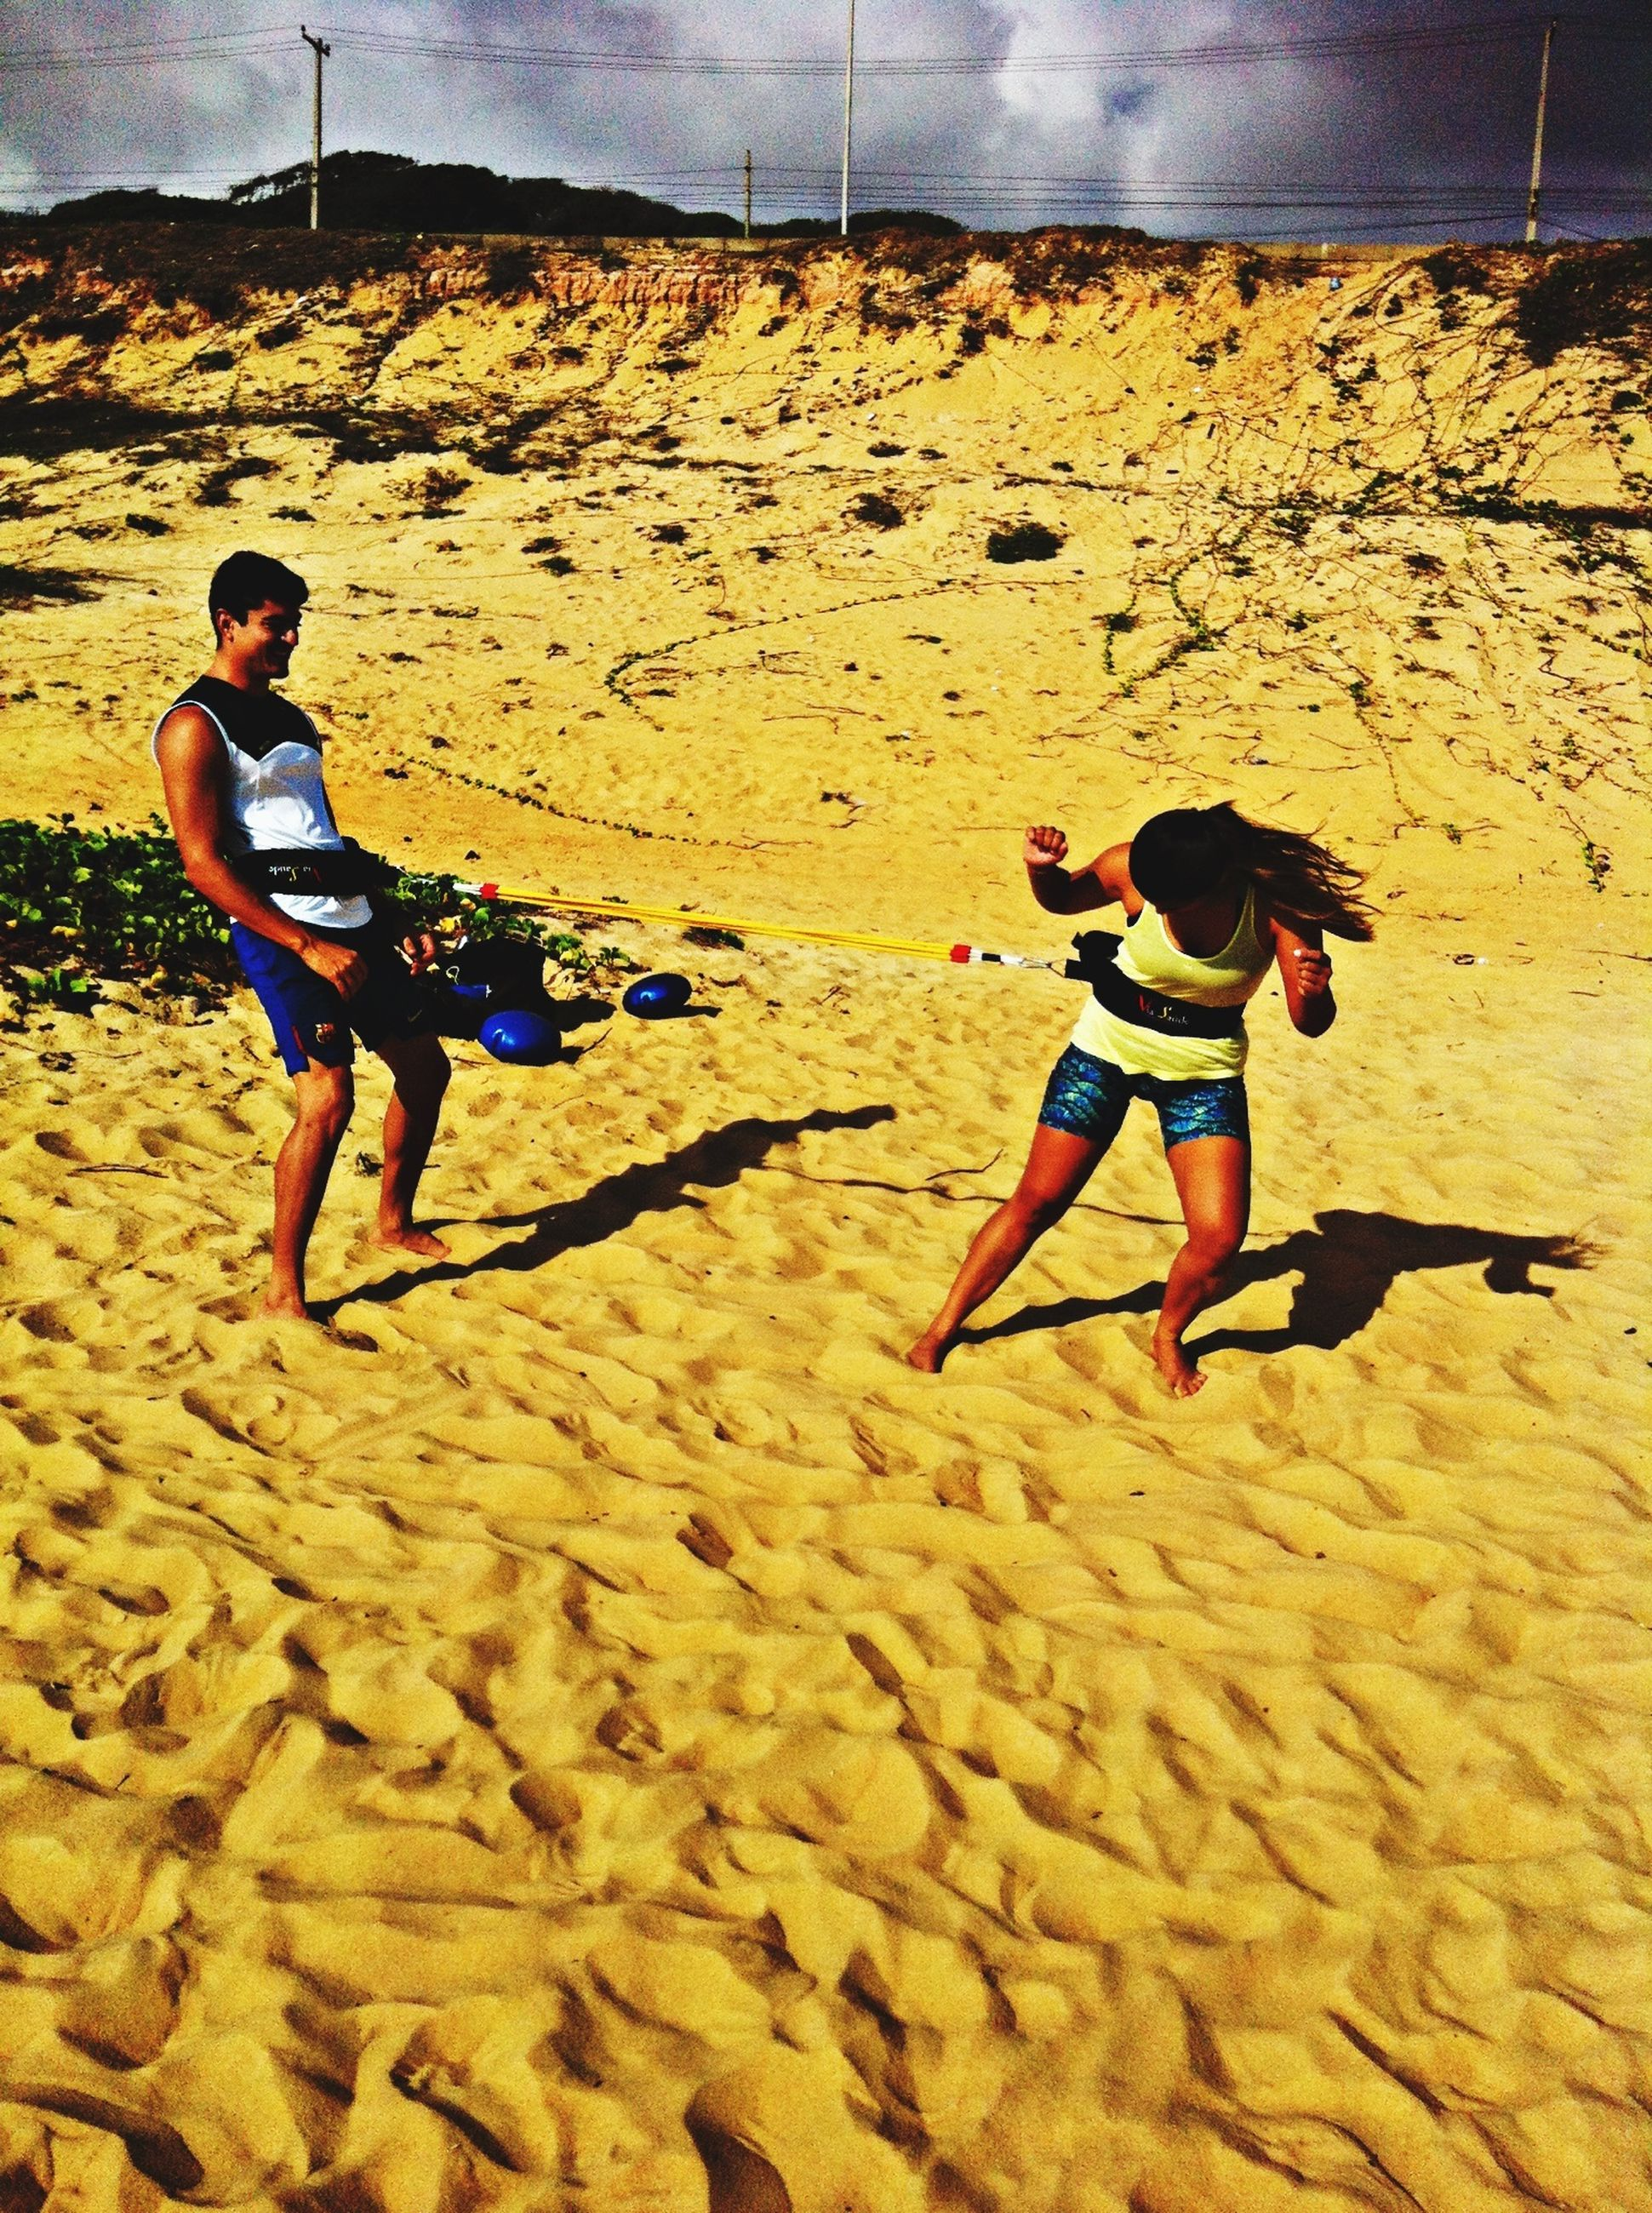 full length, lifestyles, leisure activity, casual clothing, childhood, sand, beach, boys, person, elementary age, girls, enjoyment, playing, sunlight, fun, shore, walking